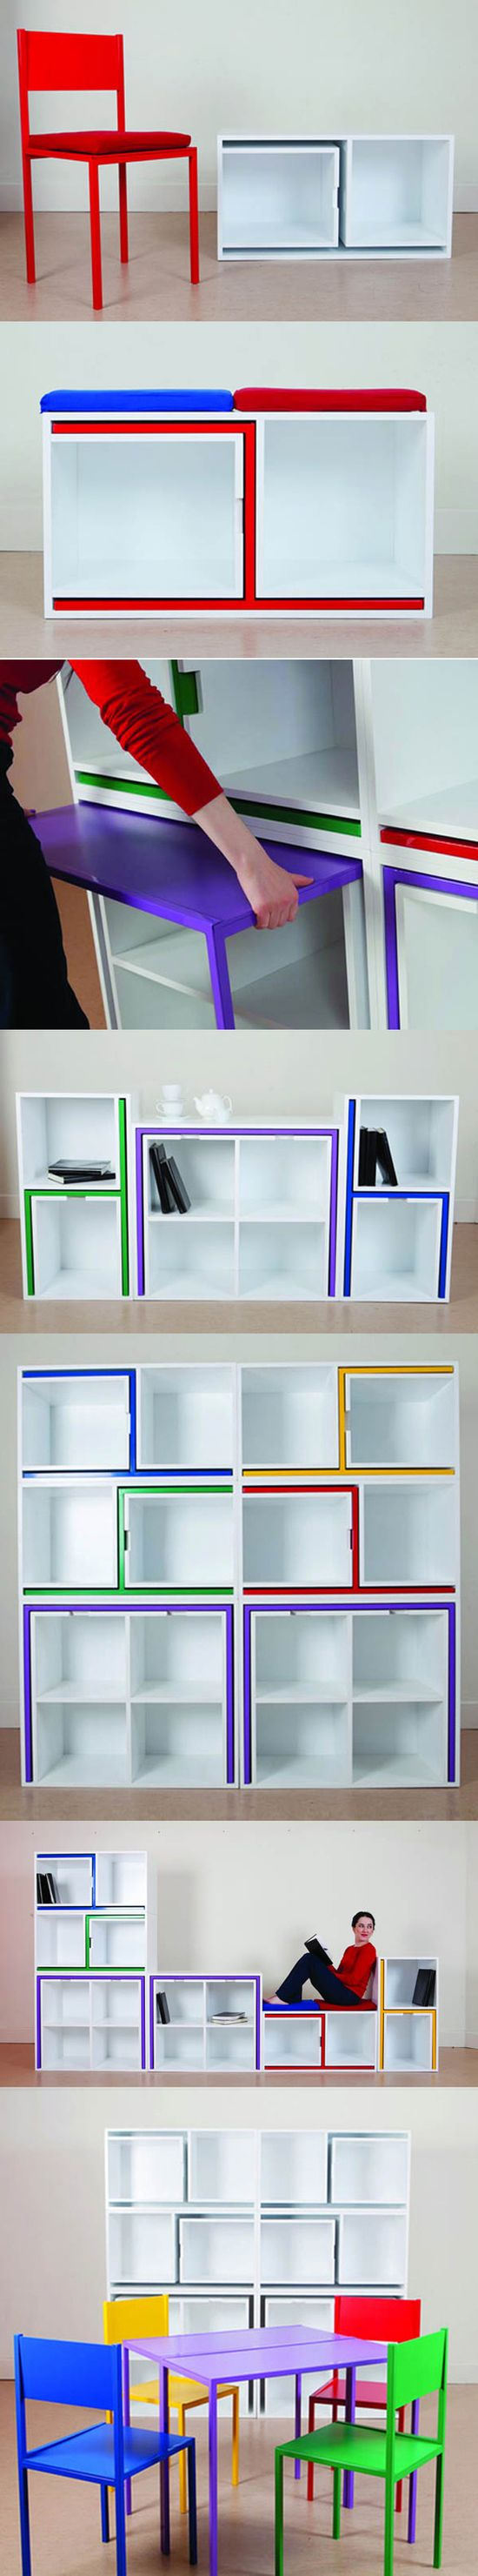 #furniture_coolest idea ever! Gives a little color, but also provides tuck away furniture!_wounder how good the quality is though sturdy? Great stylish furniture